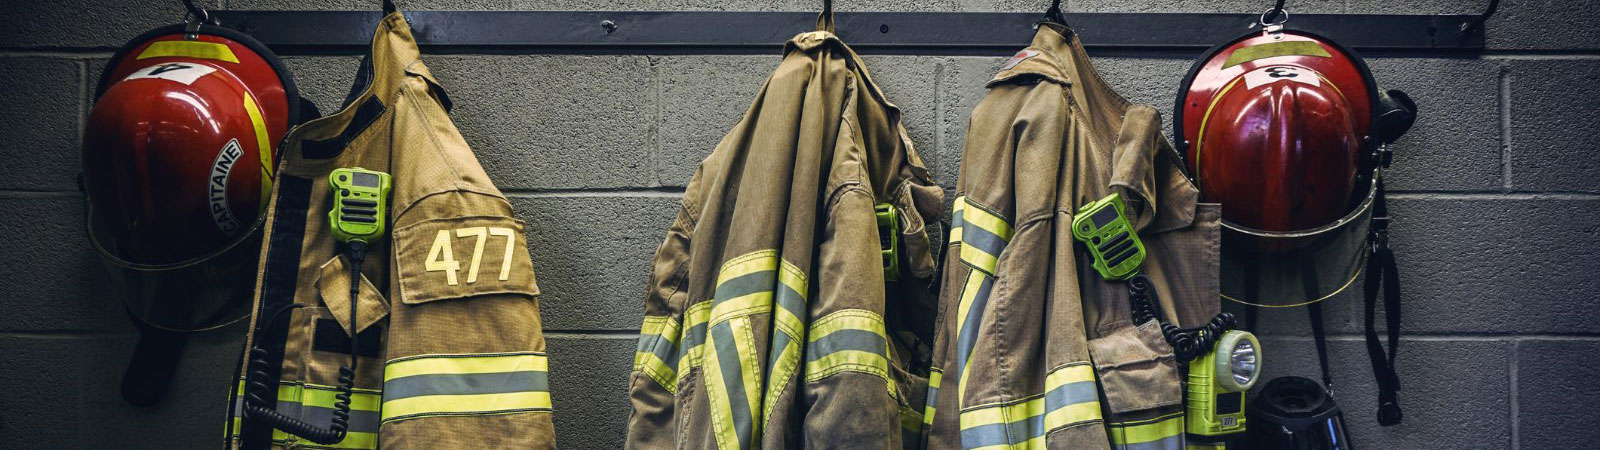 Hanging fire uniforms